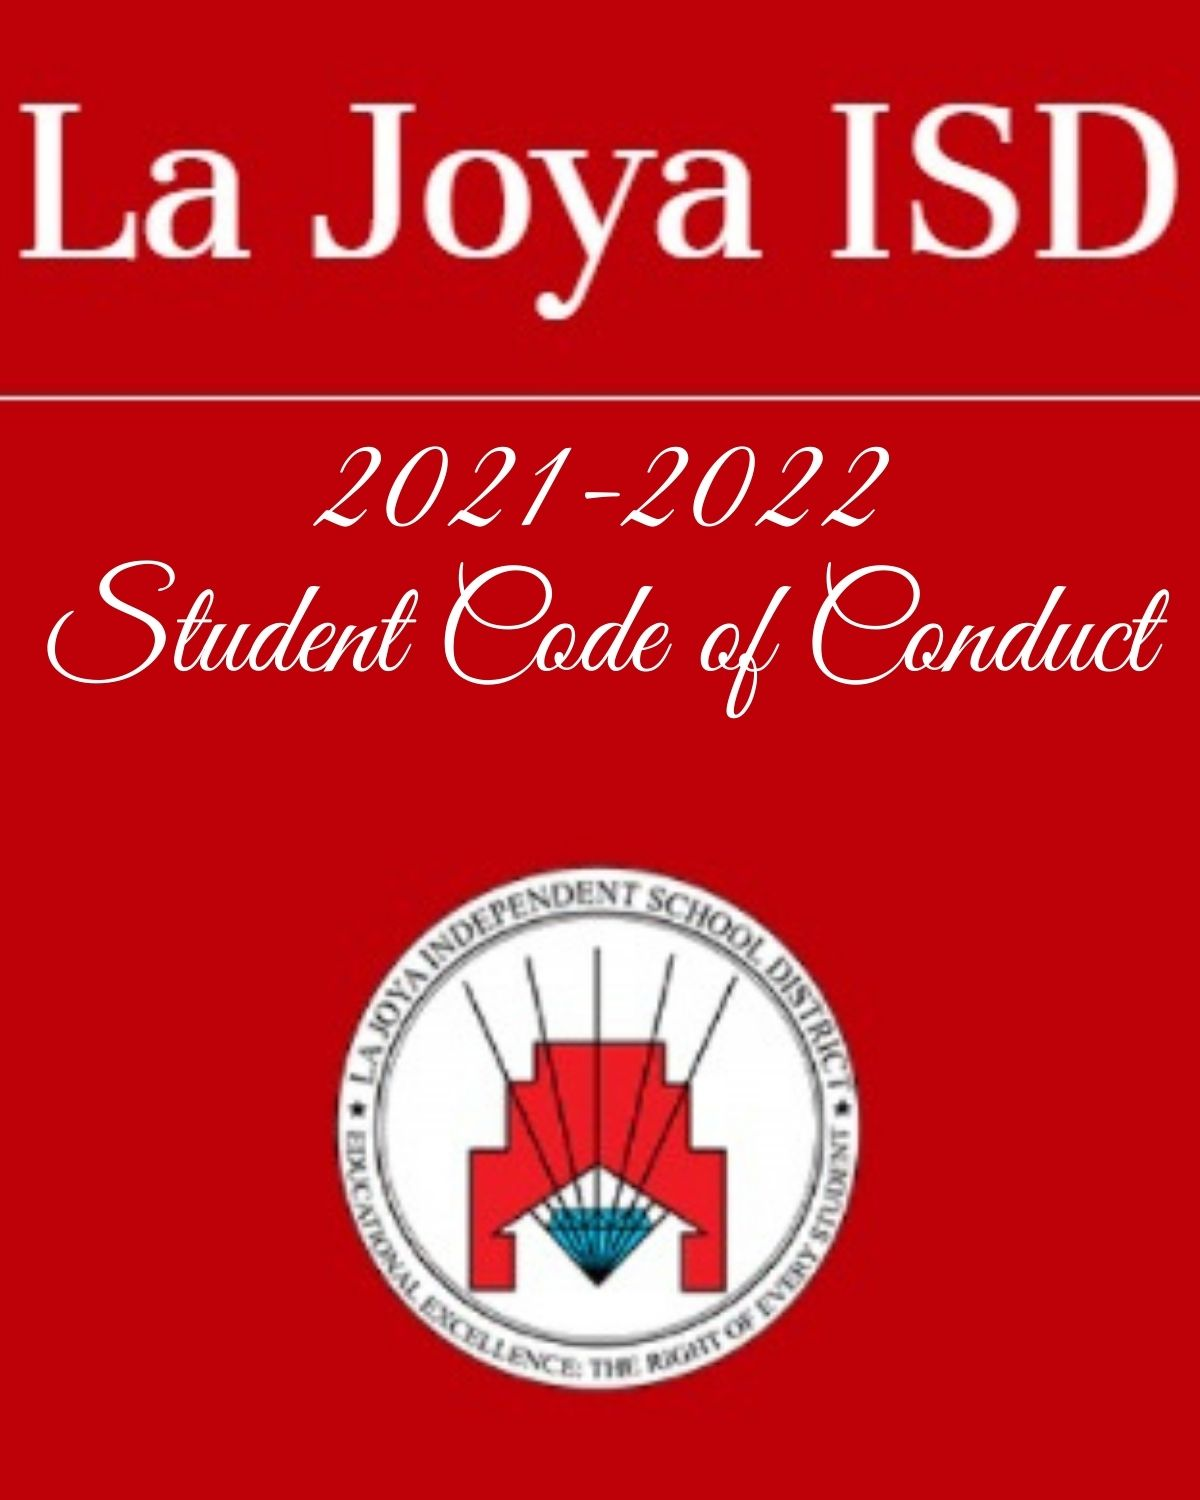 2021-2022 Student Code of Conduct